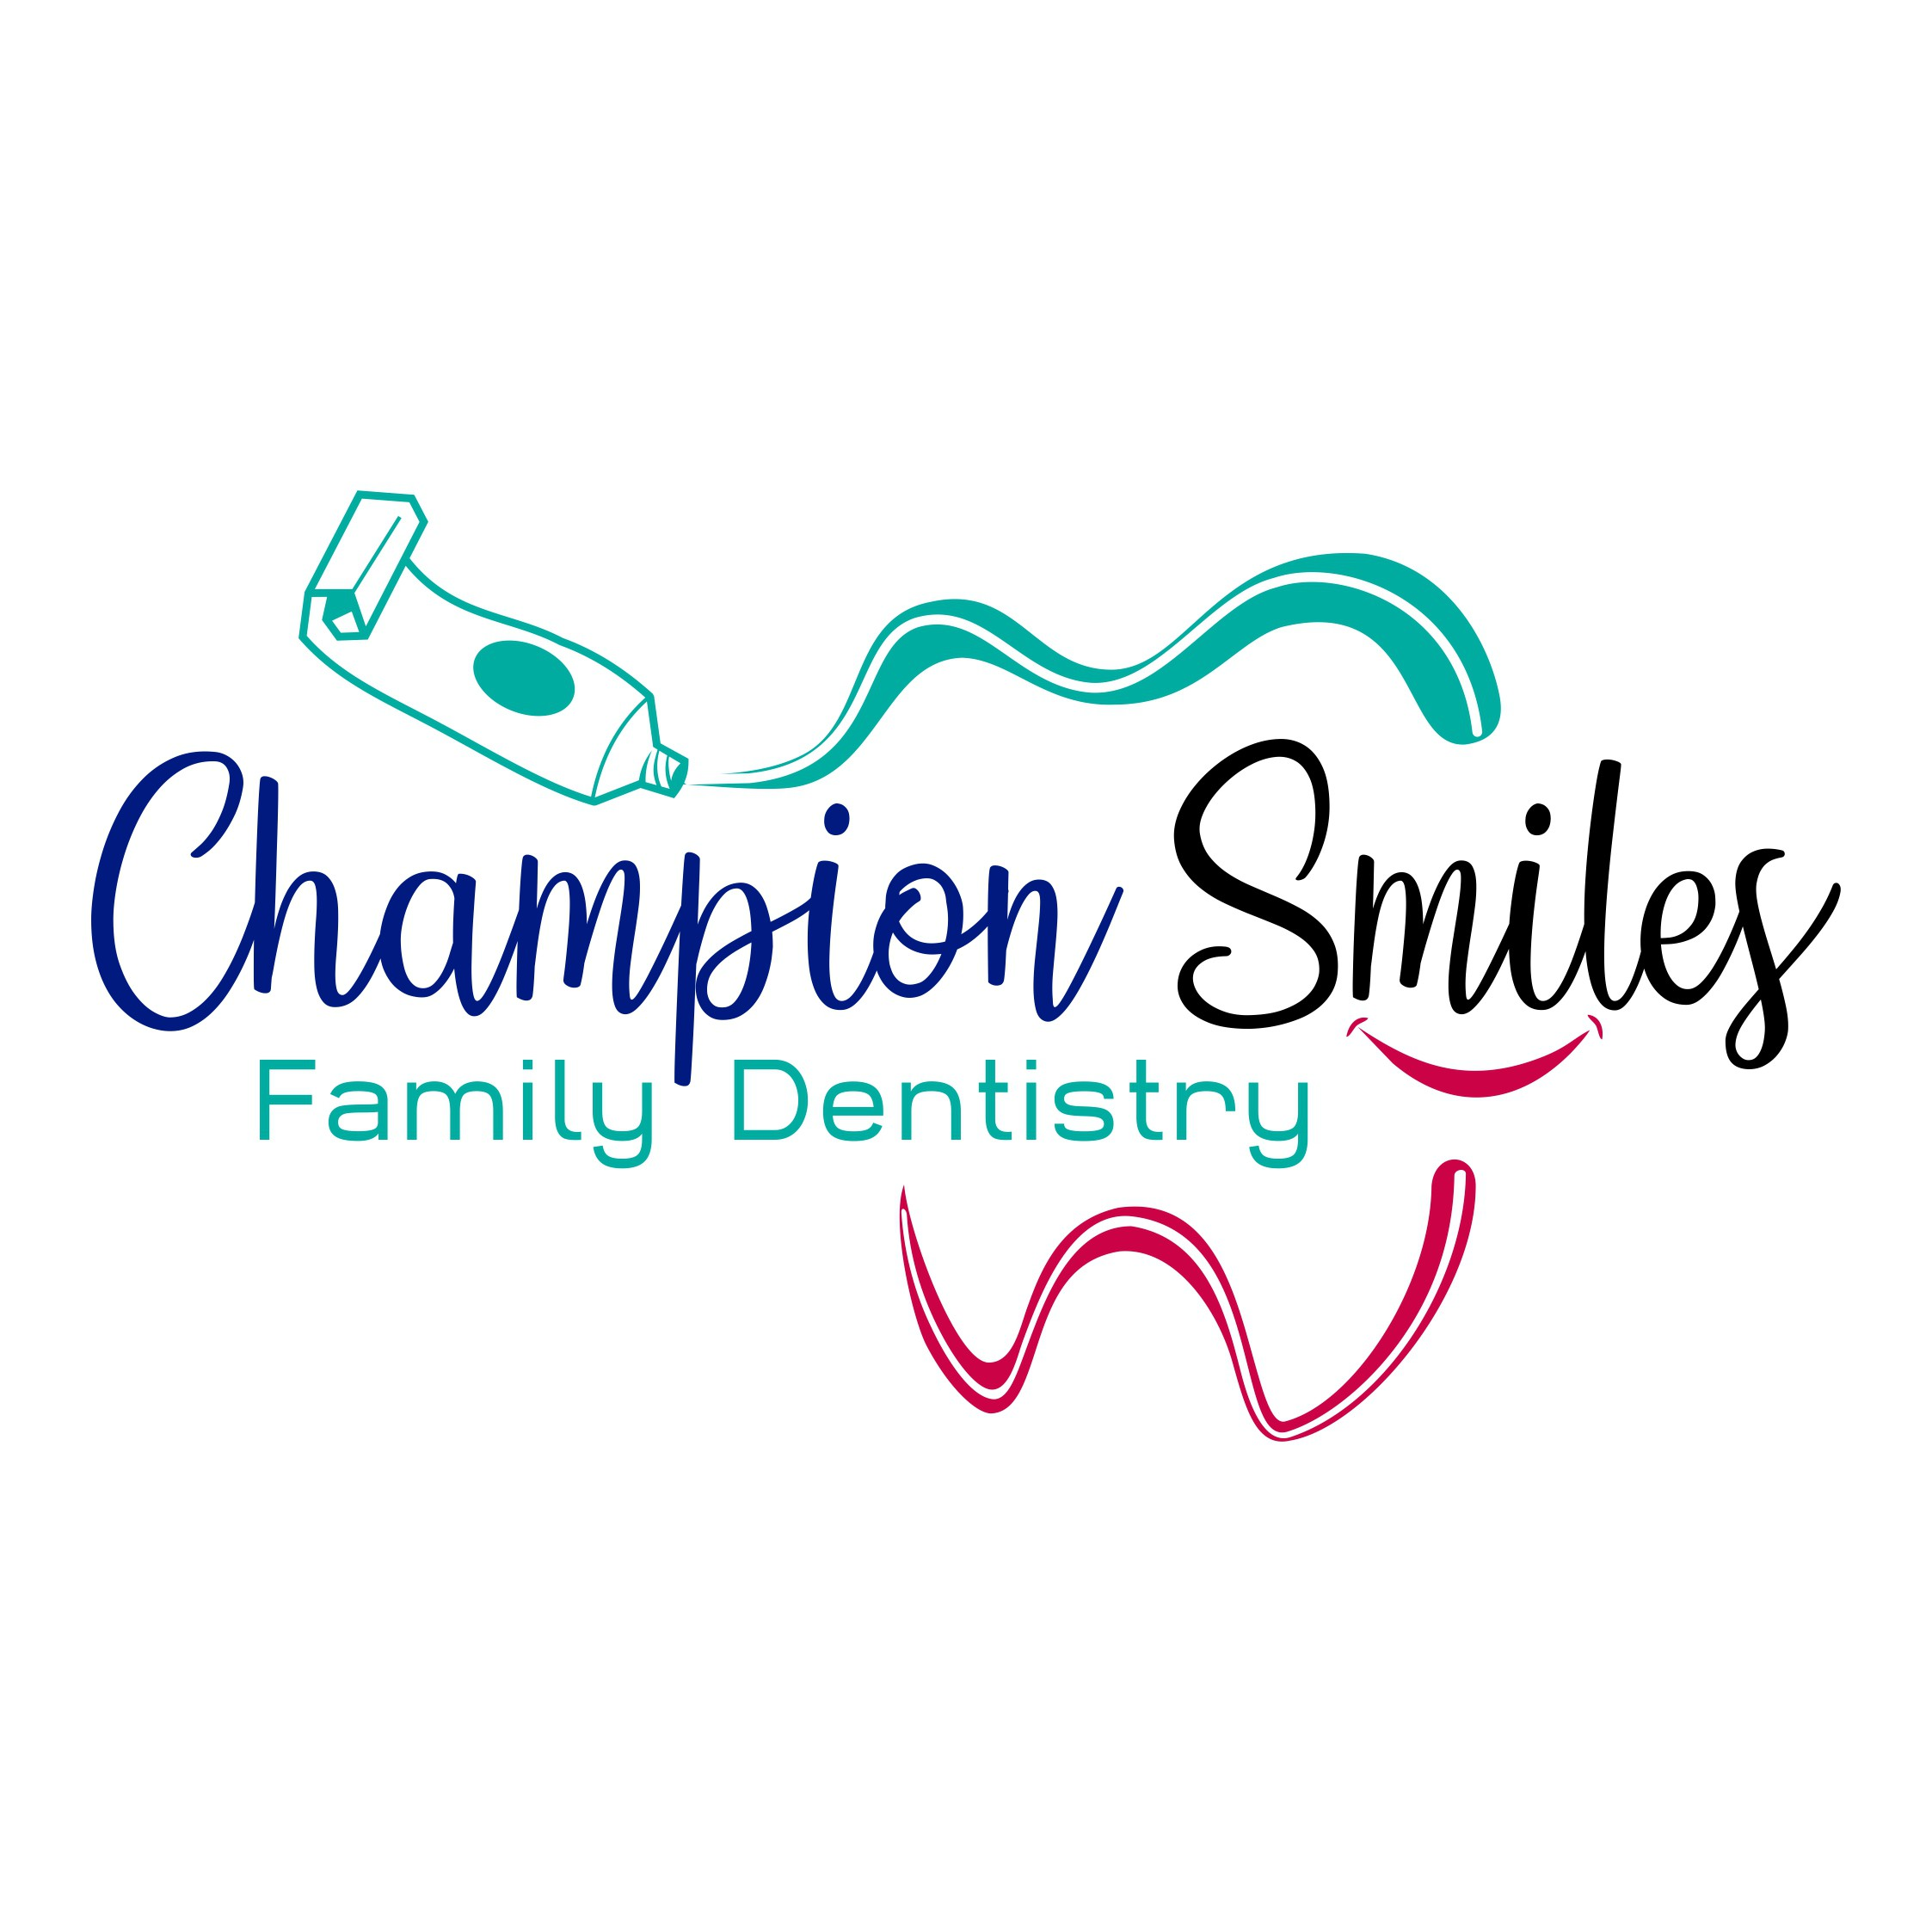 Eye catching colorful logo for compassionate dental office